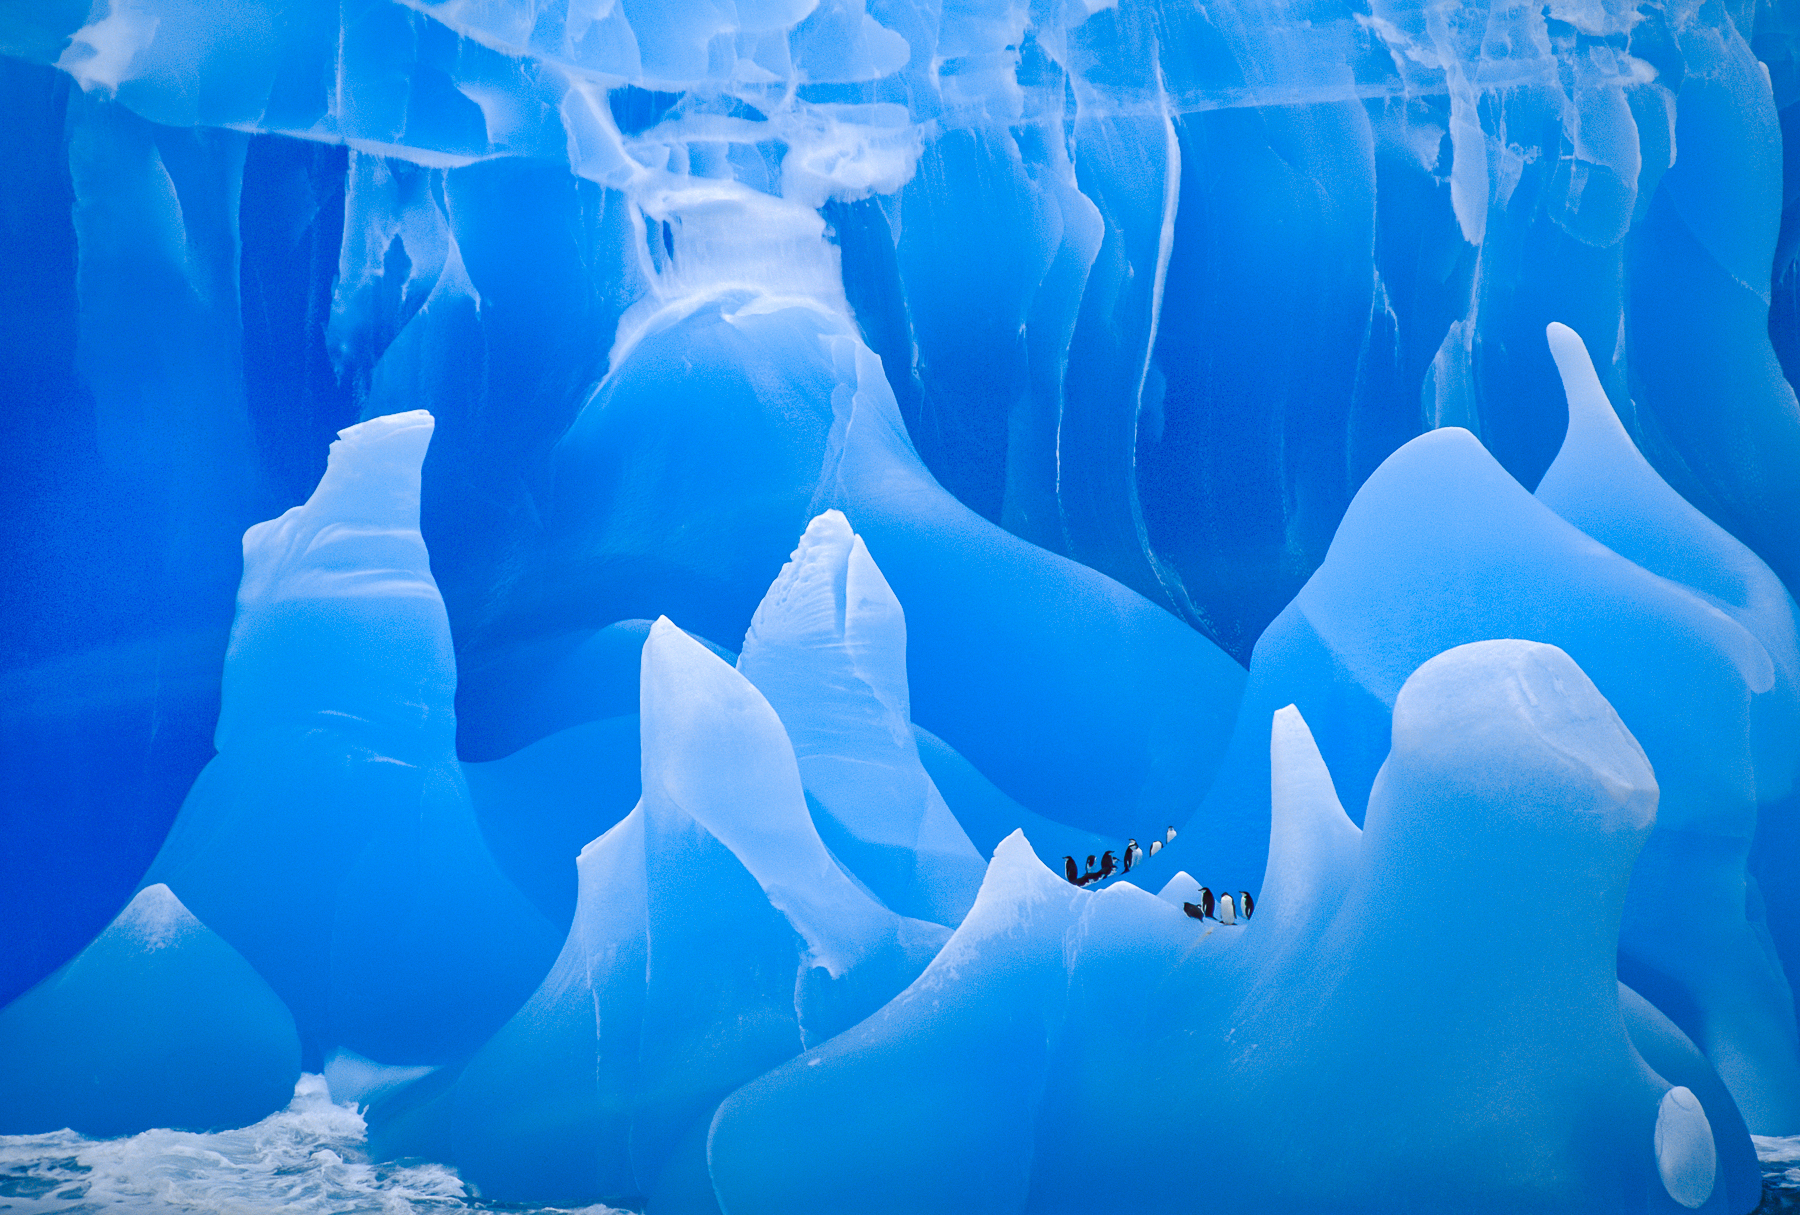 Chinstrap Penguins on Iceberg, Antarcitca